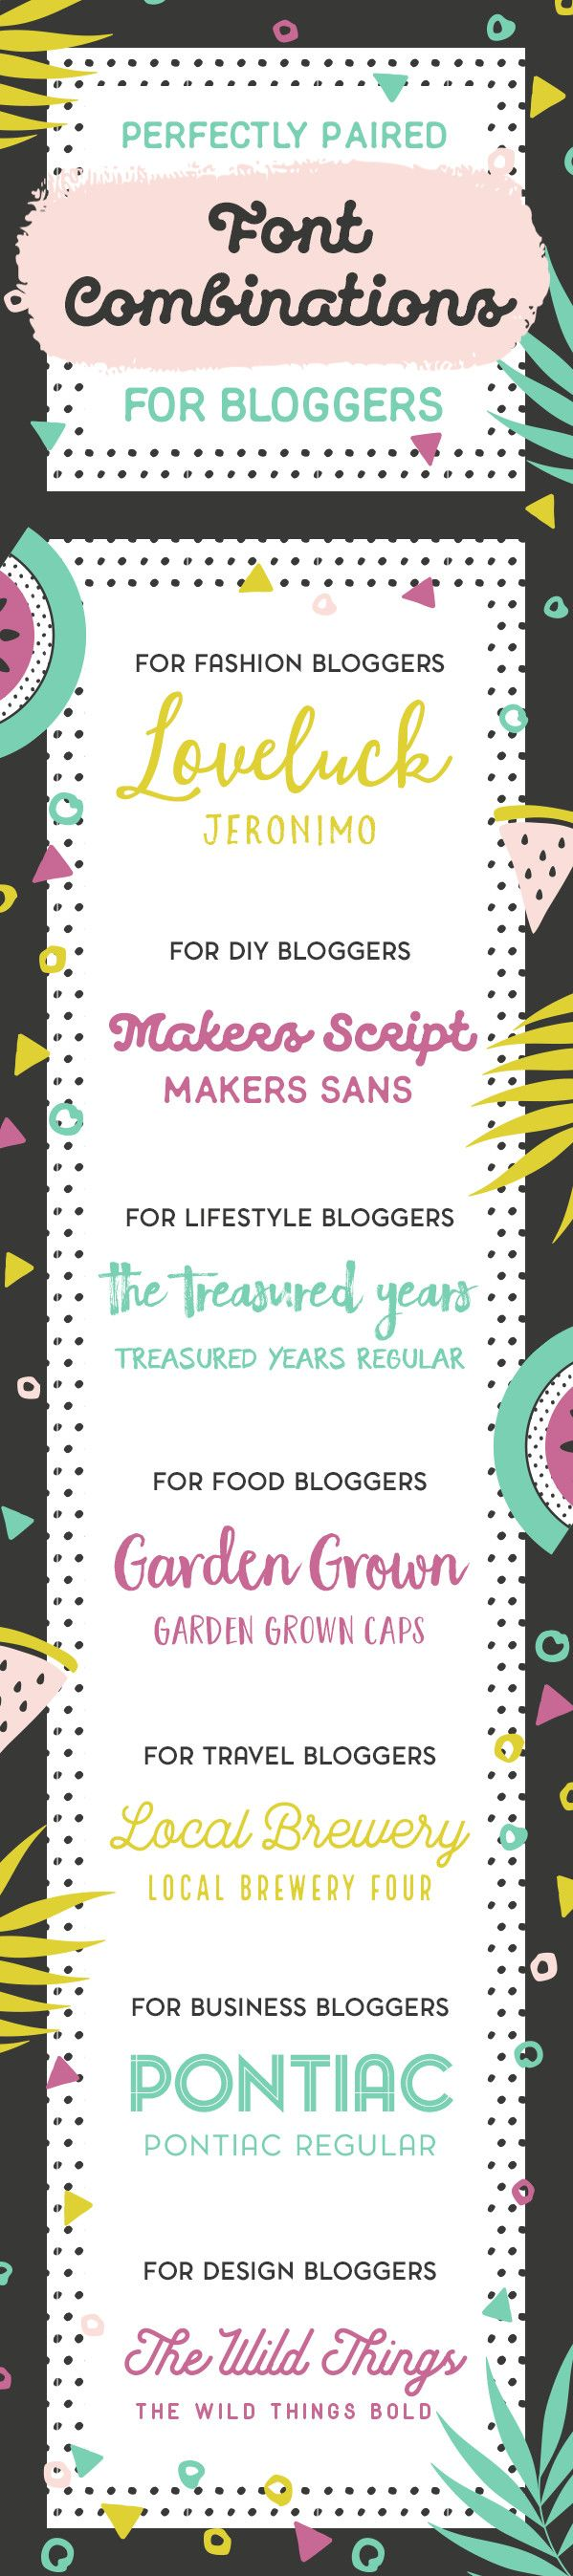 Fashion, DIY, Lifestyle, Food, Travel, Business and Design: Whatever your niche, these font combinations for bloggers will crack the font selection process for you!